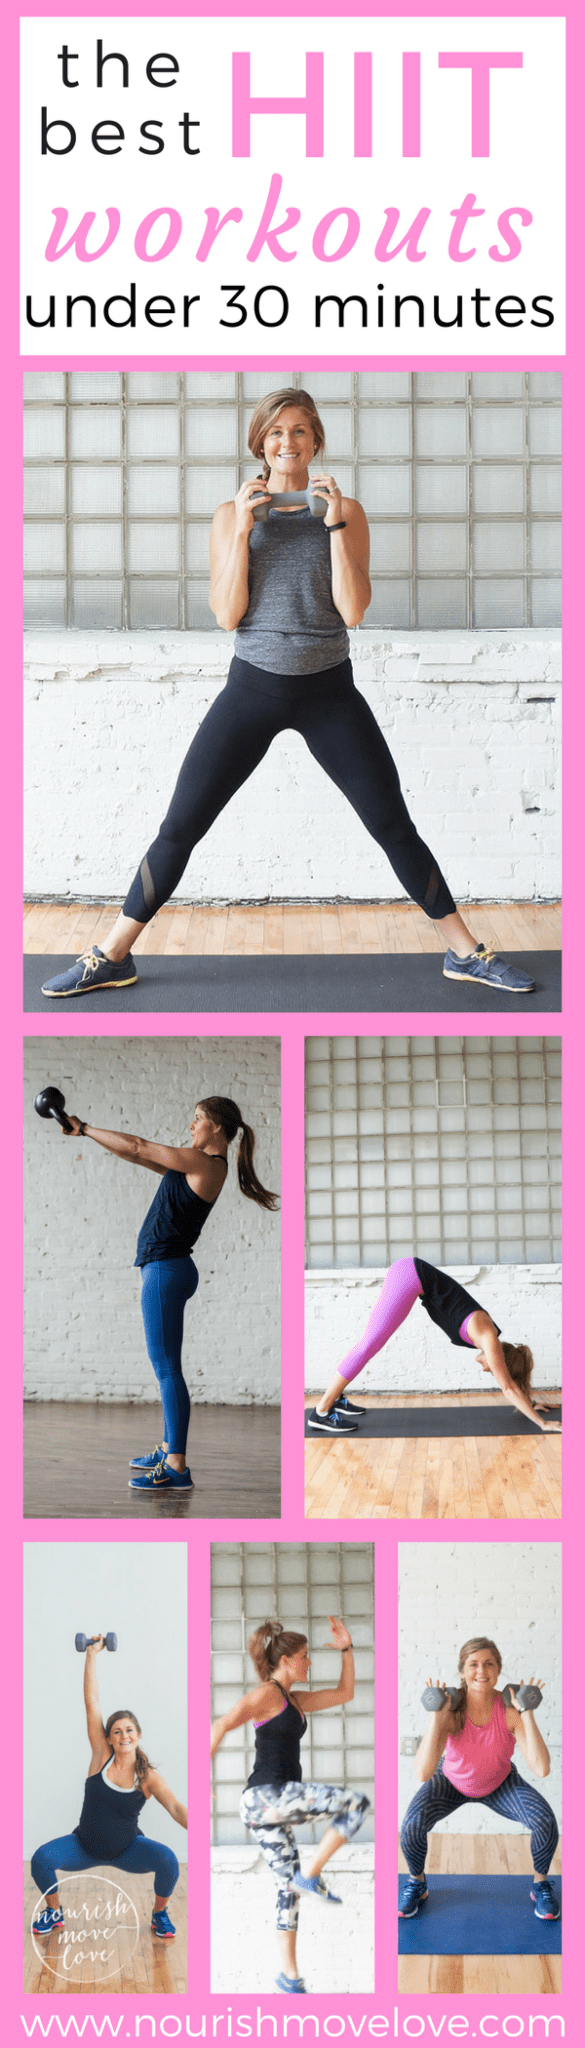 The Best HIIT Workouts Under 30 Minutes | www.nourishmovelove.com